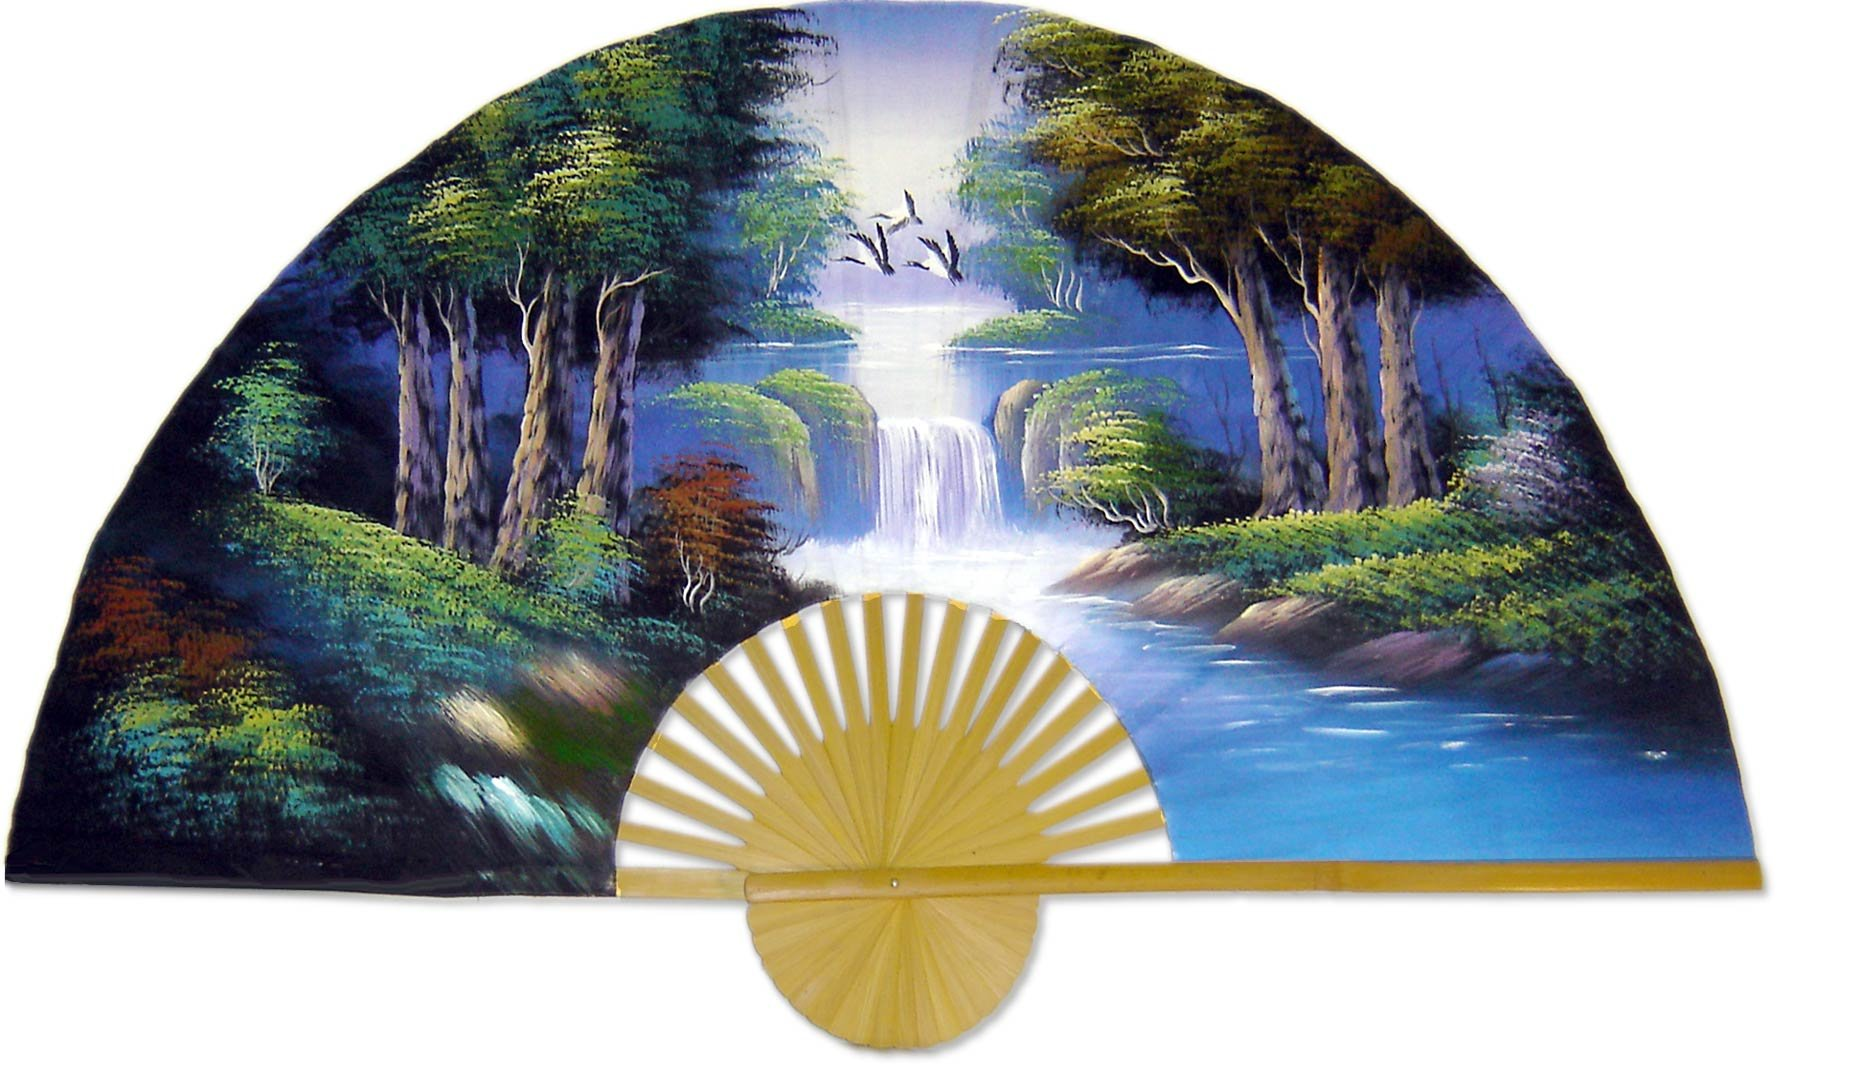 Large 60'' Folding Wall Fan -- The Wood -- Original Hand-painted Wall Art by Oriental-Decor (Image #1)